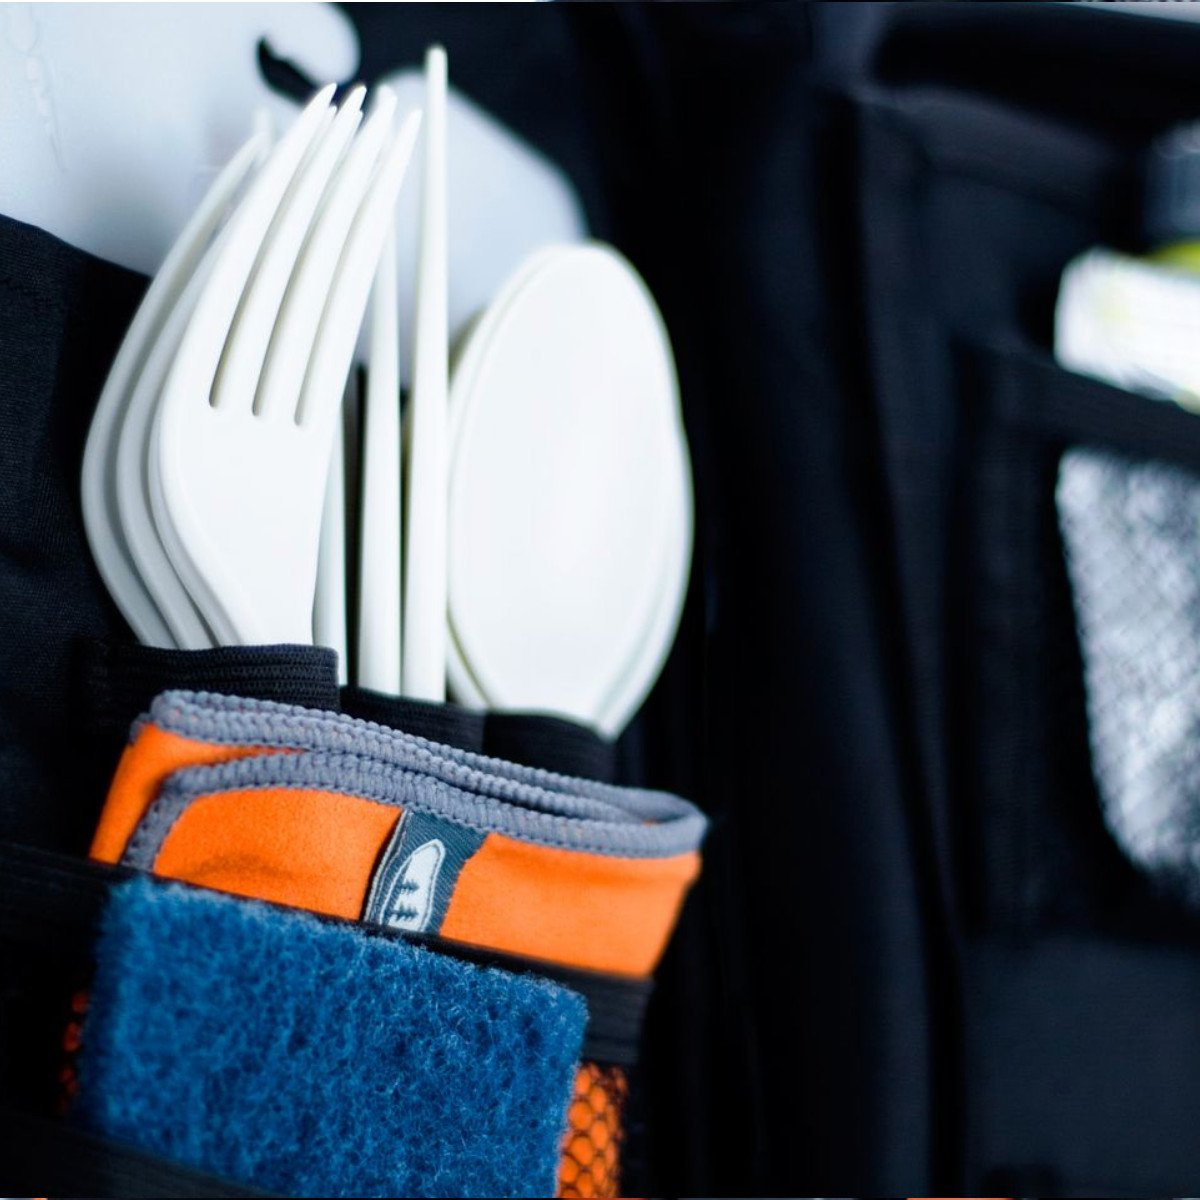 Camping cutlery inside the GSI Destination kitchen set